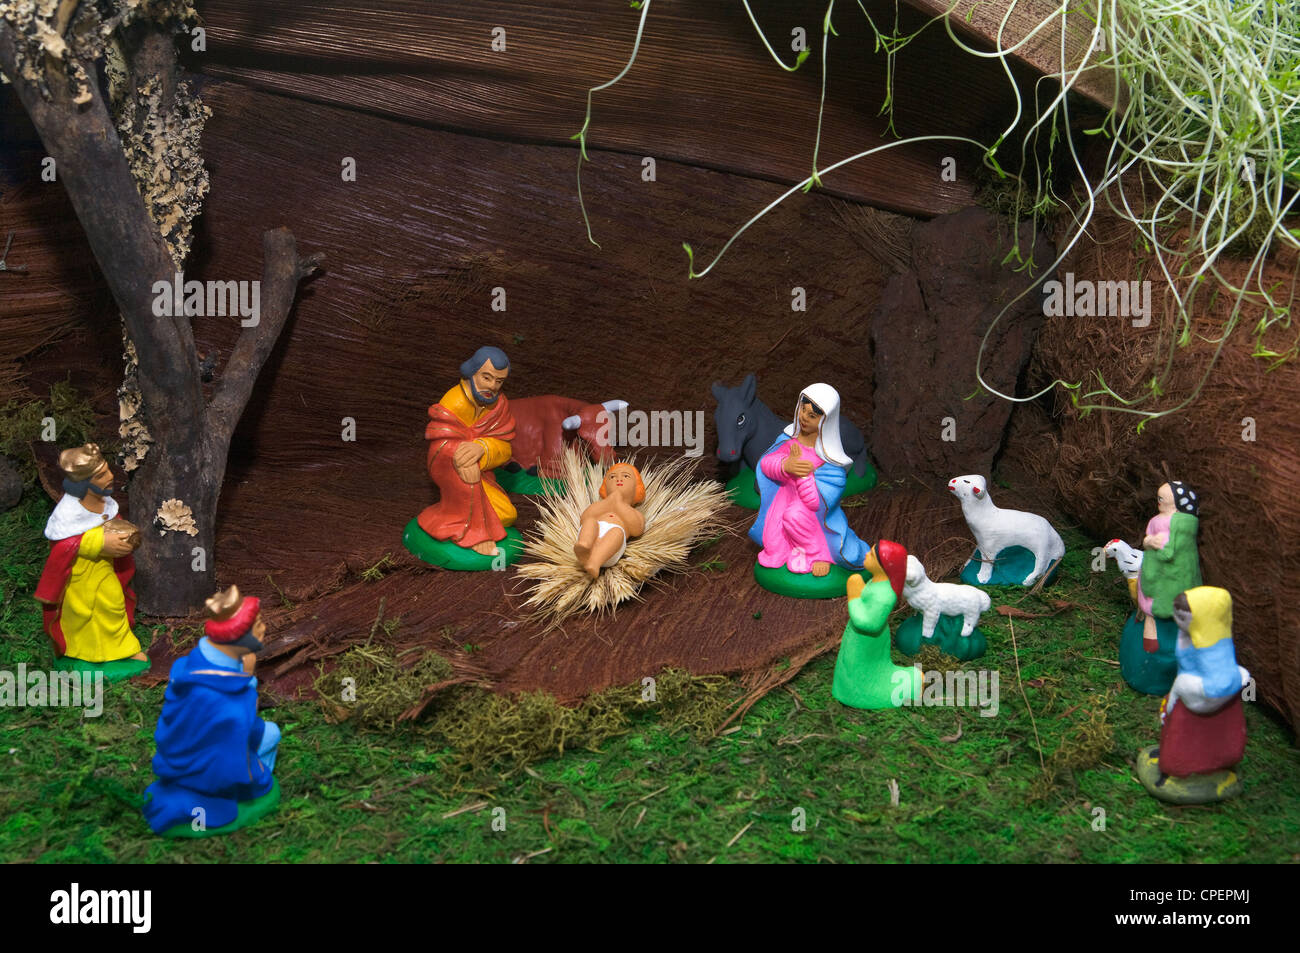 Azores traditional Christmas crib made with clay figures - Stock Image